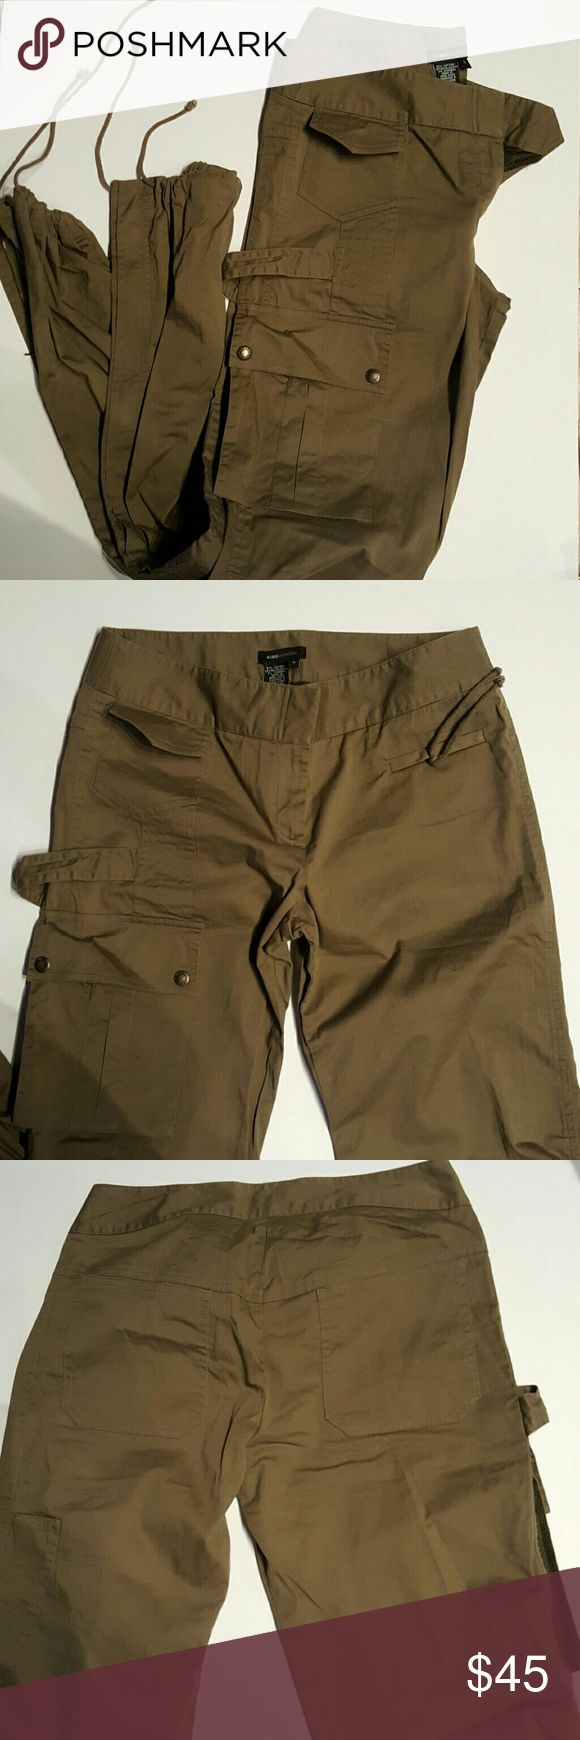 BCBG MAX AZRIA olive army cargo pants size 8 *Reduced price*BCBG MAX AZRIA olive color, army cargo pants size 8, retailed@$80+  like new condition. All my items from smoke free pet free home. Listed on Mercari* BCBG Pants